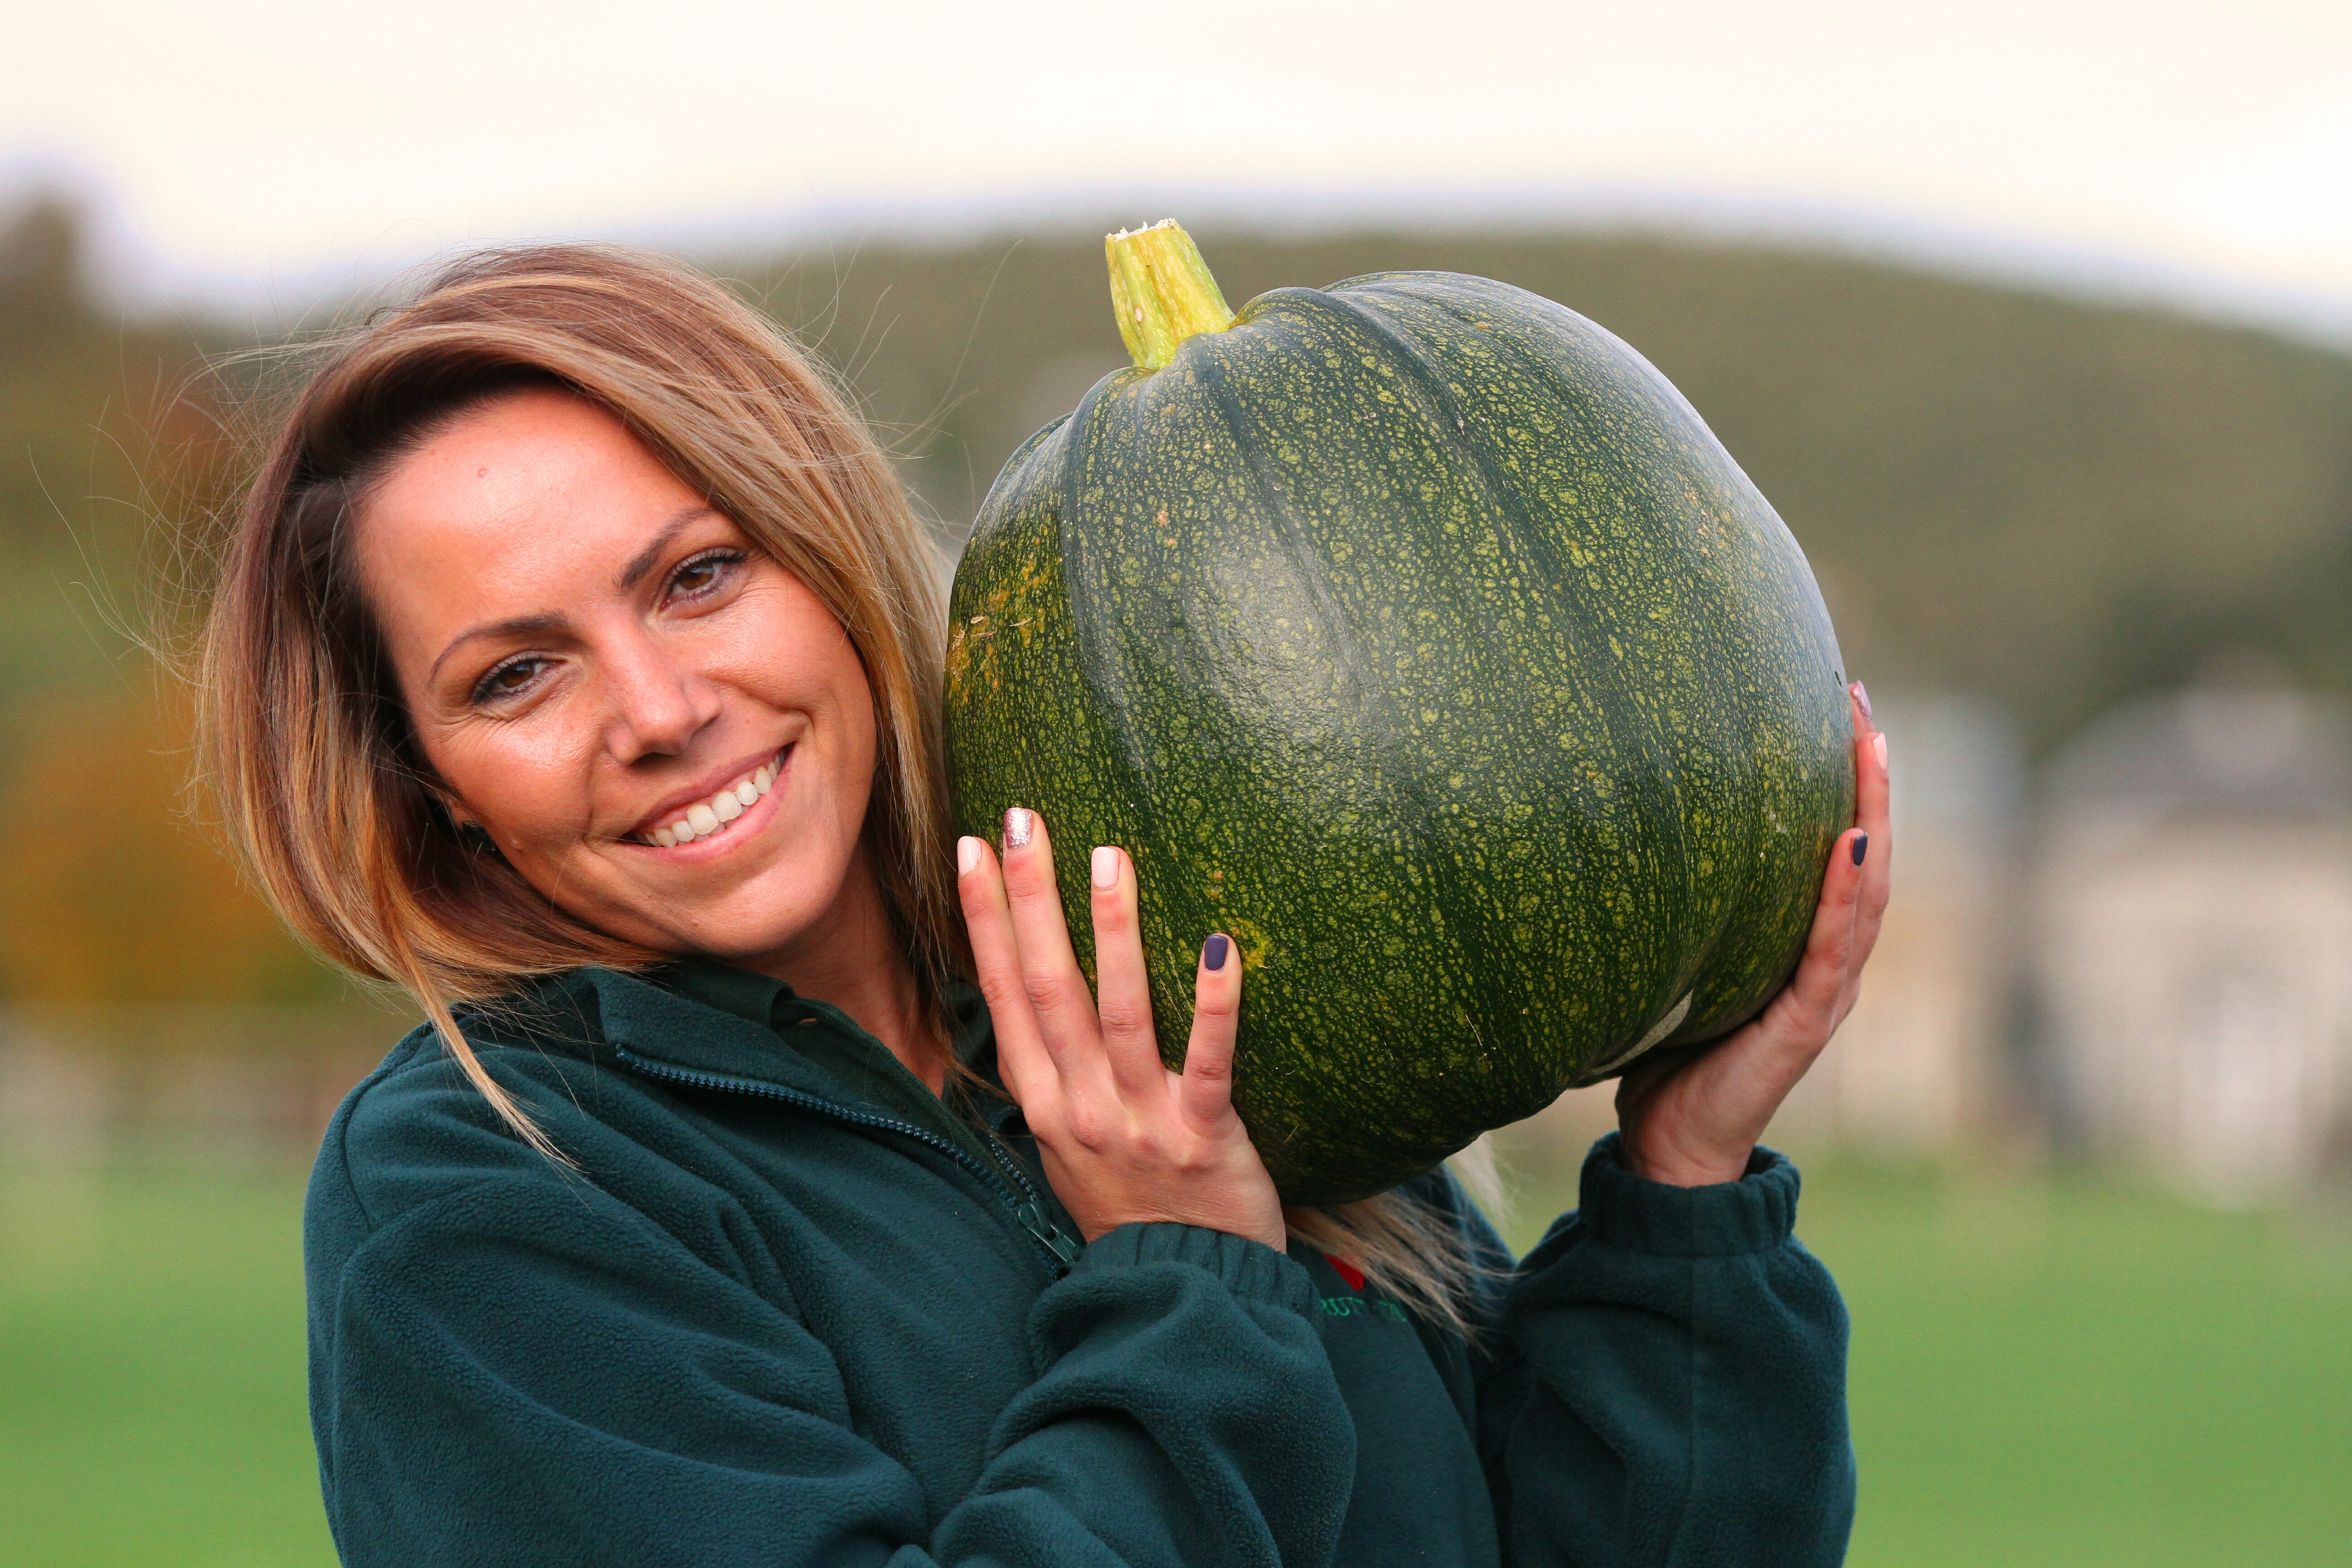 Cairnie Fruit Farm assistant Silvia Moldovan with one of the green pumpkins.